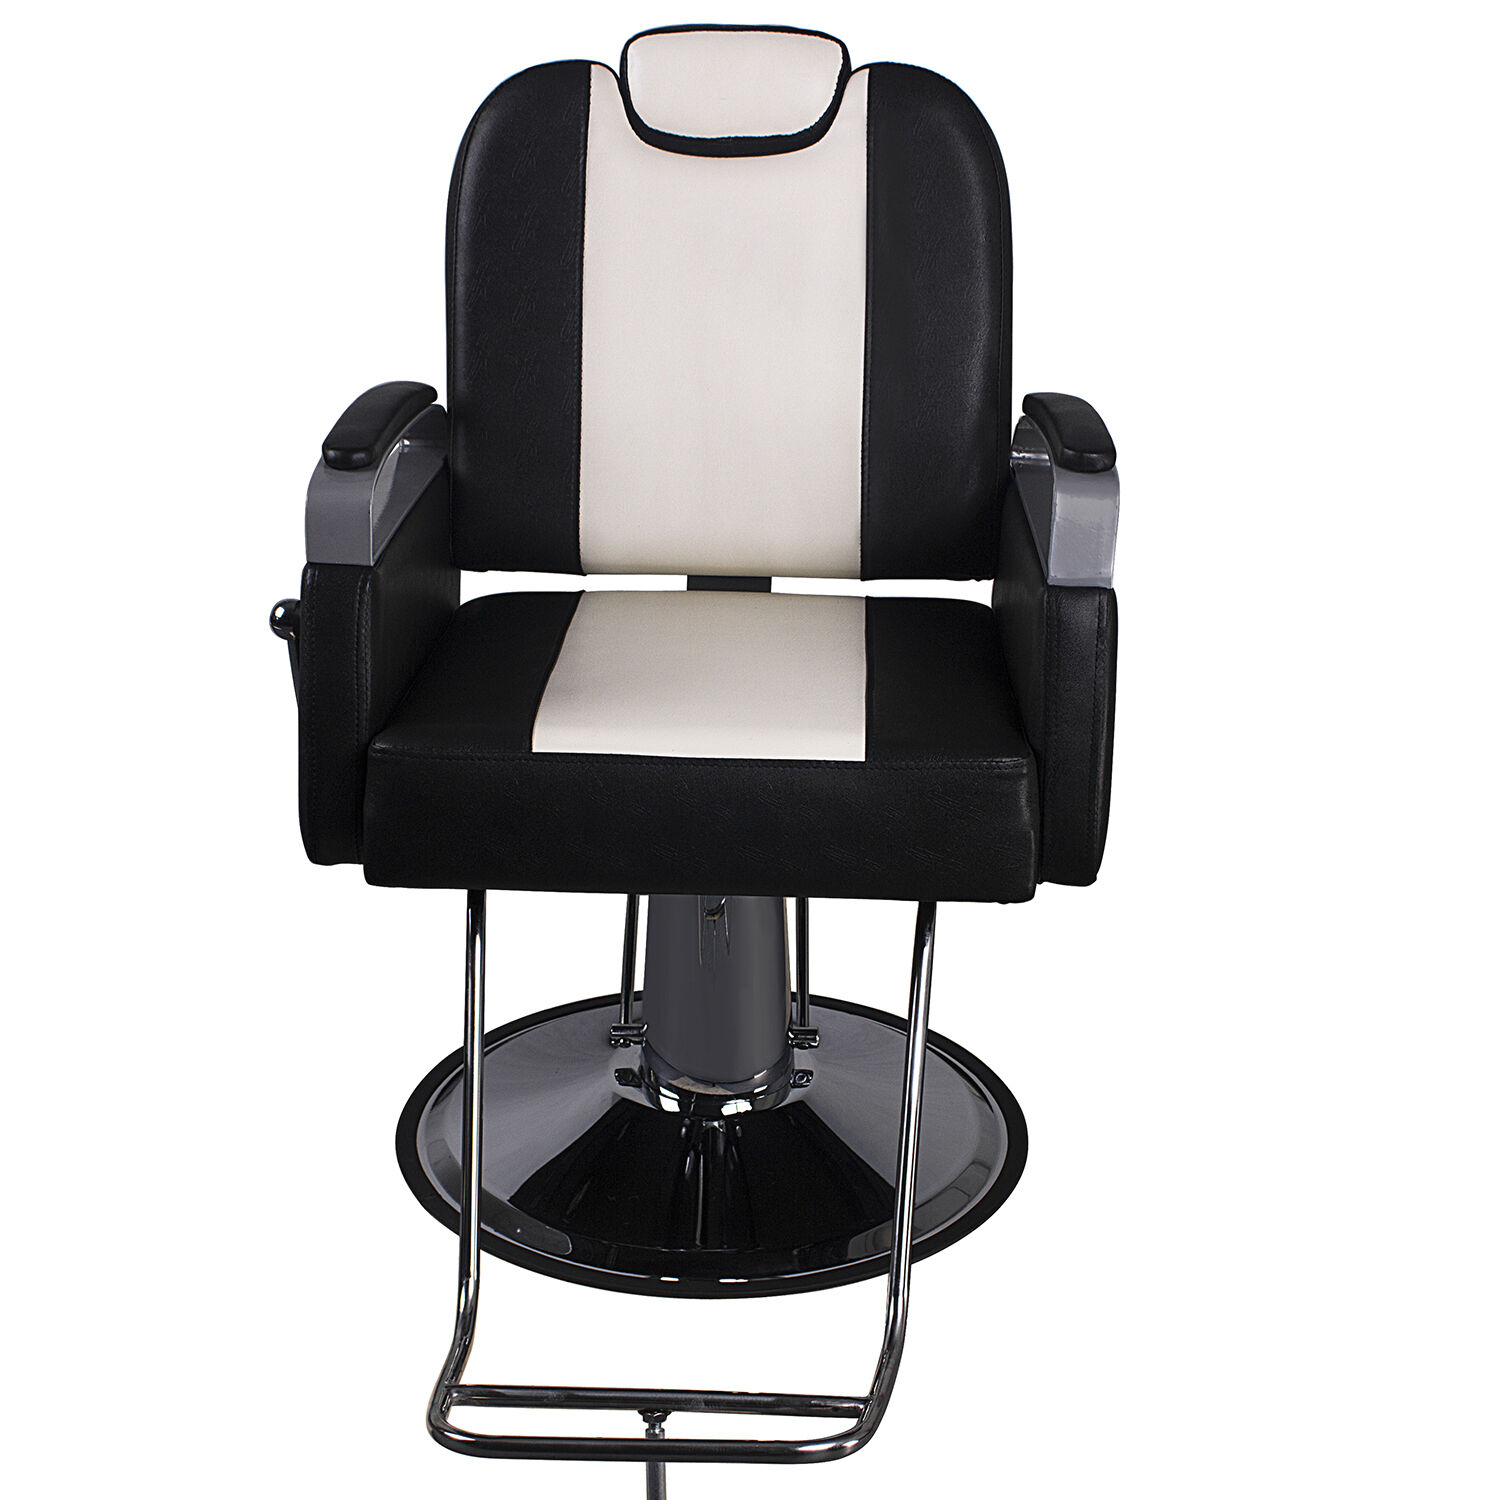 hydraulic hair styling chairs office chair covers black adjustable barber salon